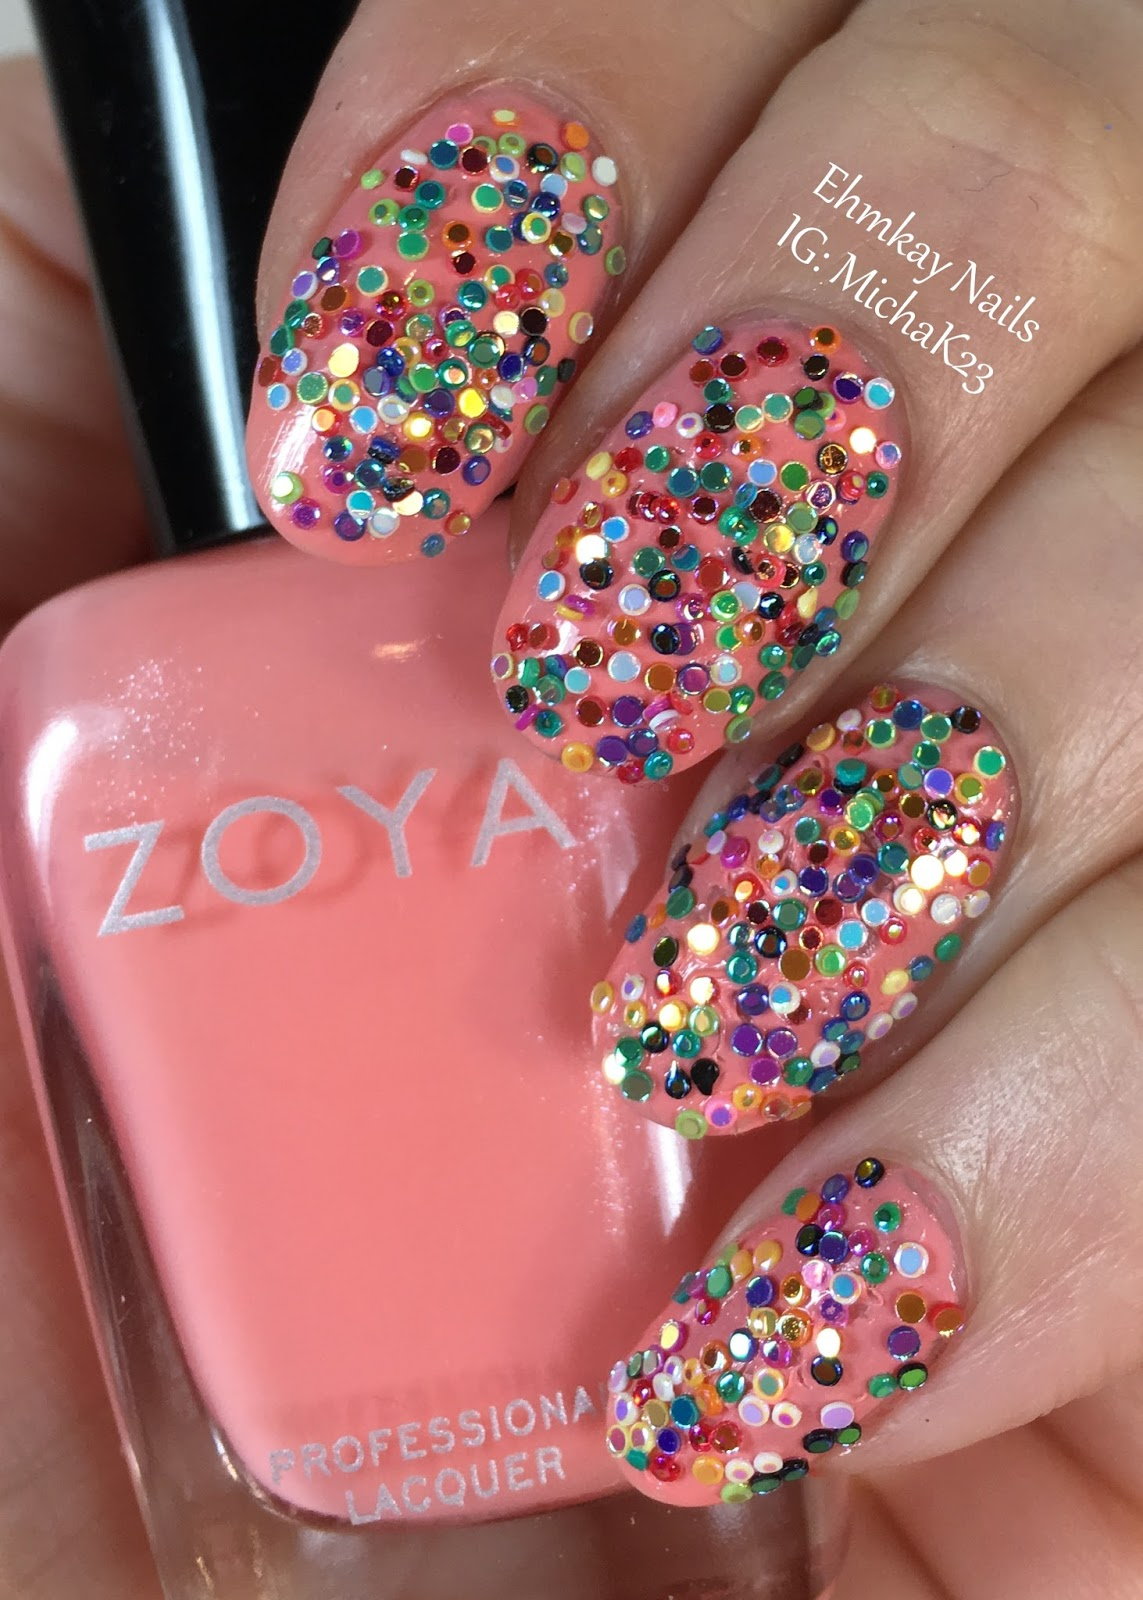 Ehmkay nails sprinkles nail art with lady queen nail gems sprinkles nail art with lady queen nail gems prinsesfo Images